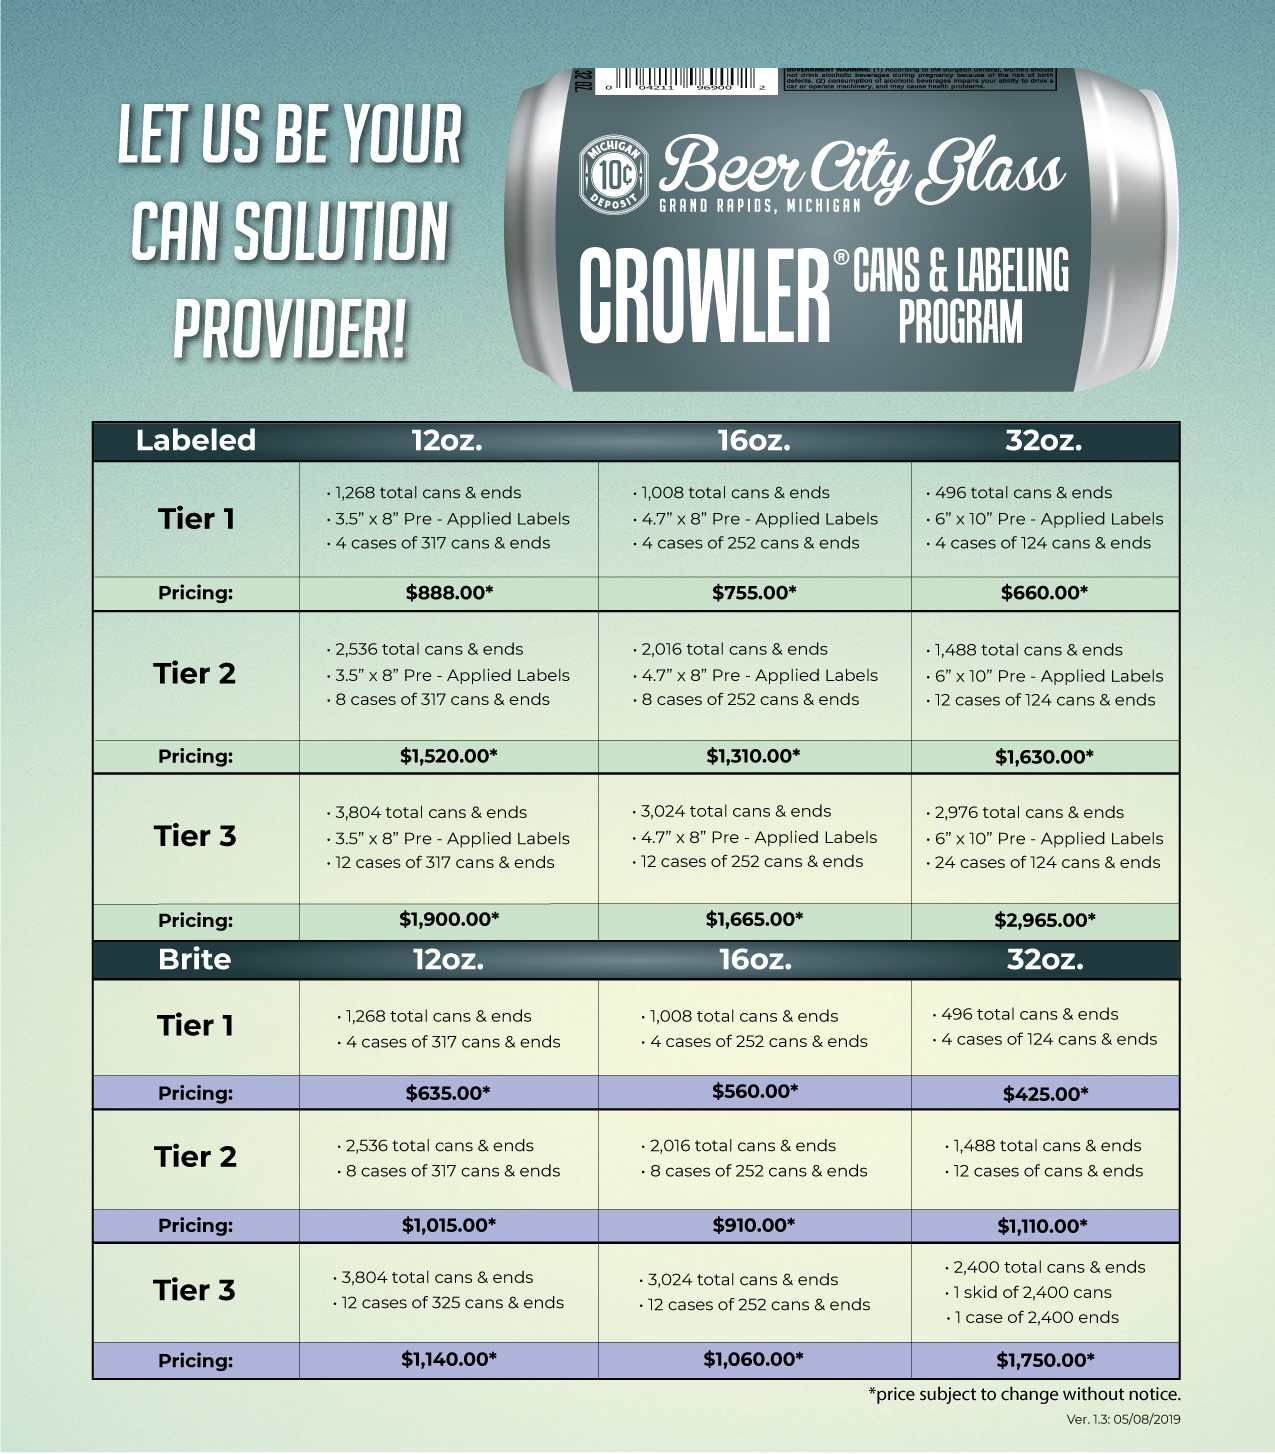 Crowler-Pricing-Info-Sheet-(Revised-05.08.2019)_WEB